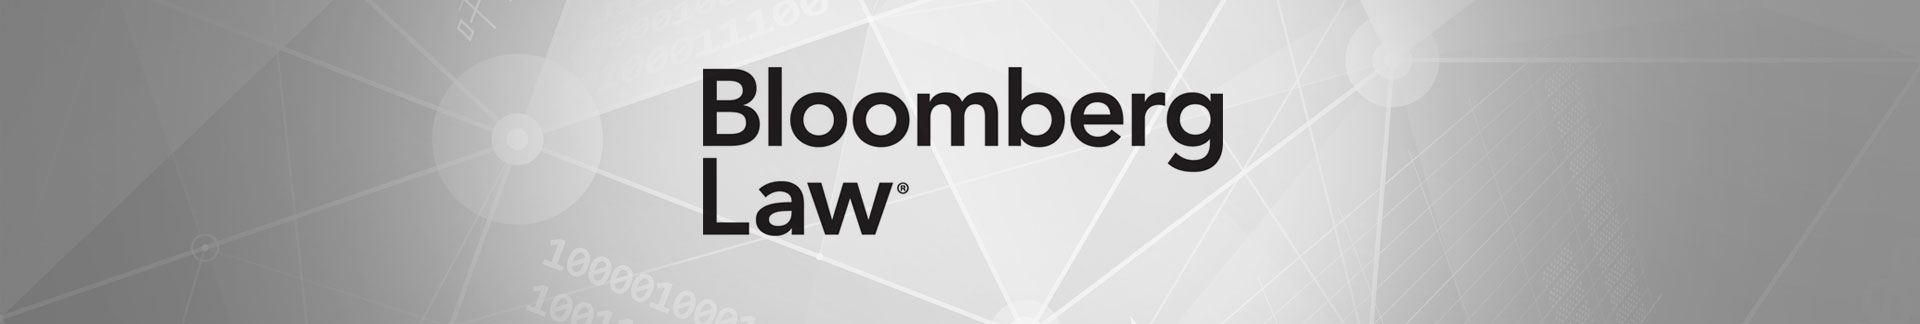 Bloomberg Law news banner